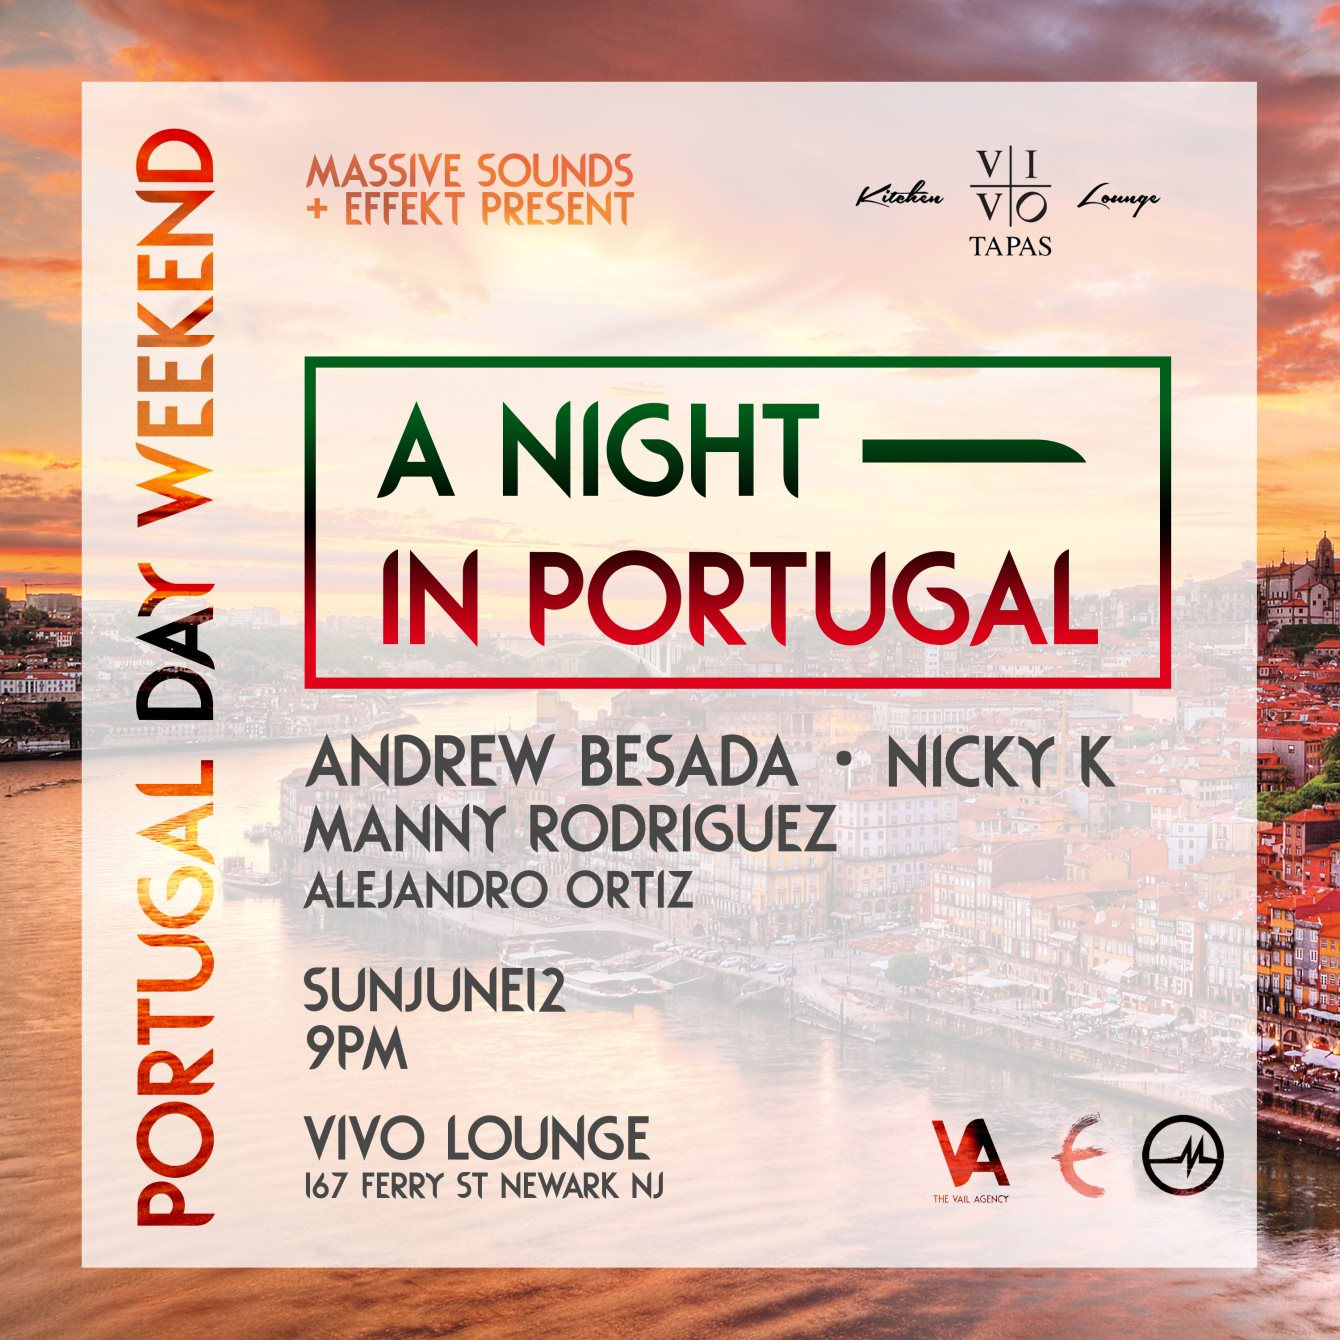 A Night In Portugal - Flyer front